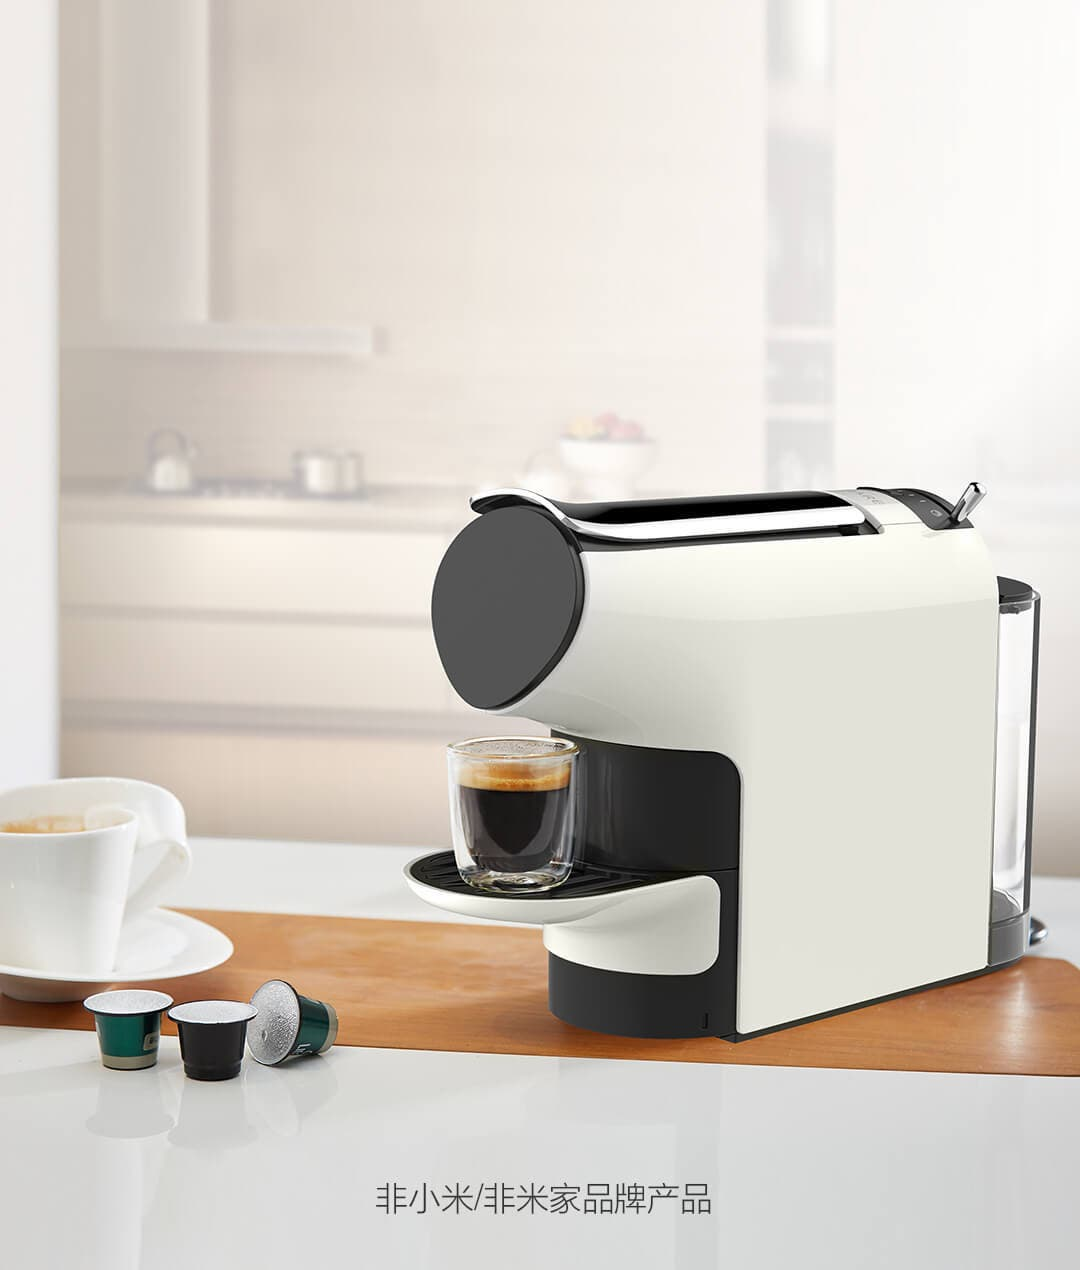 Scishare Coffee Machine